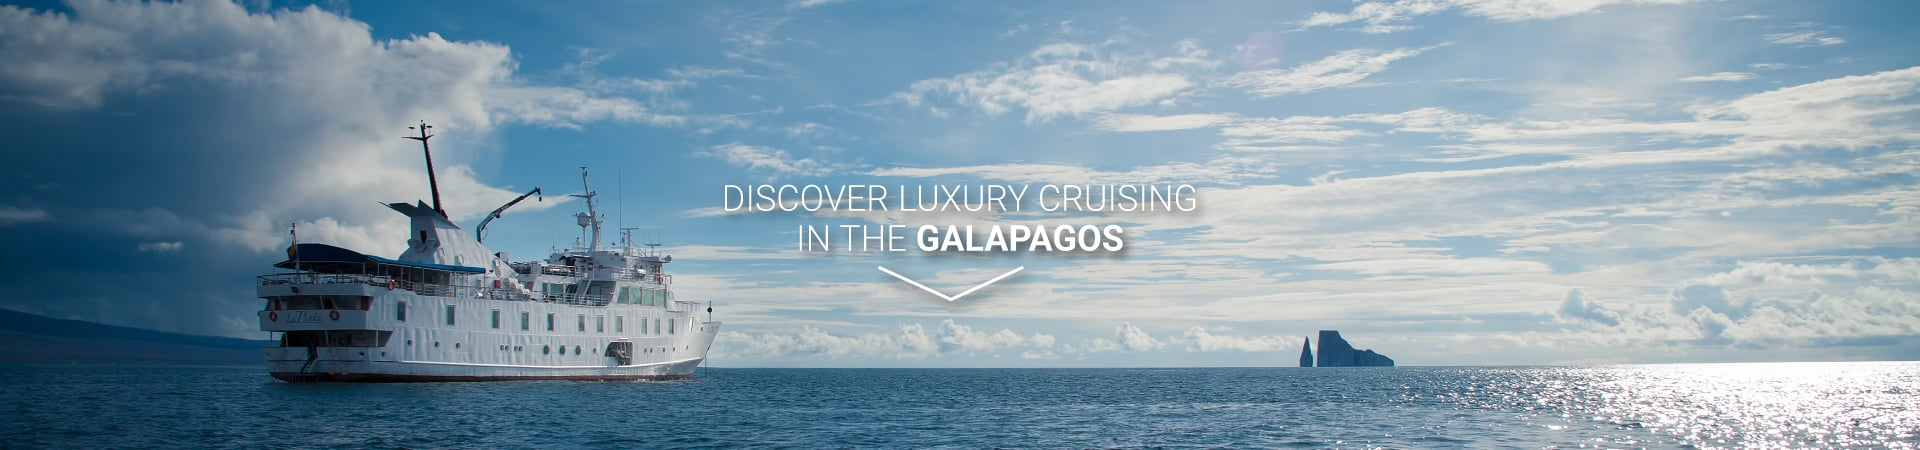 Discover Luxury Cruising in the Galapagos